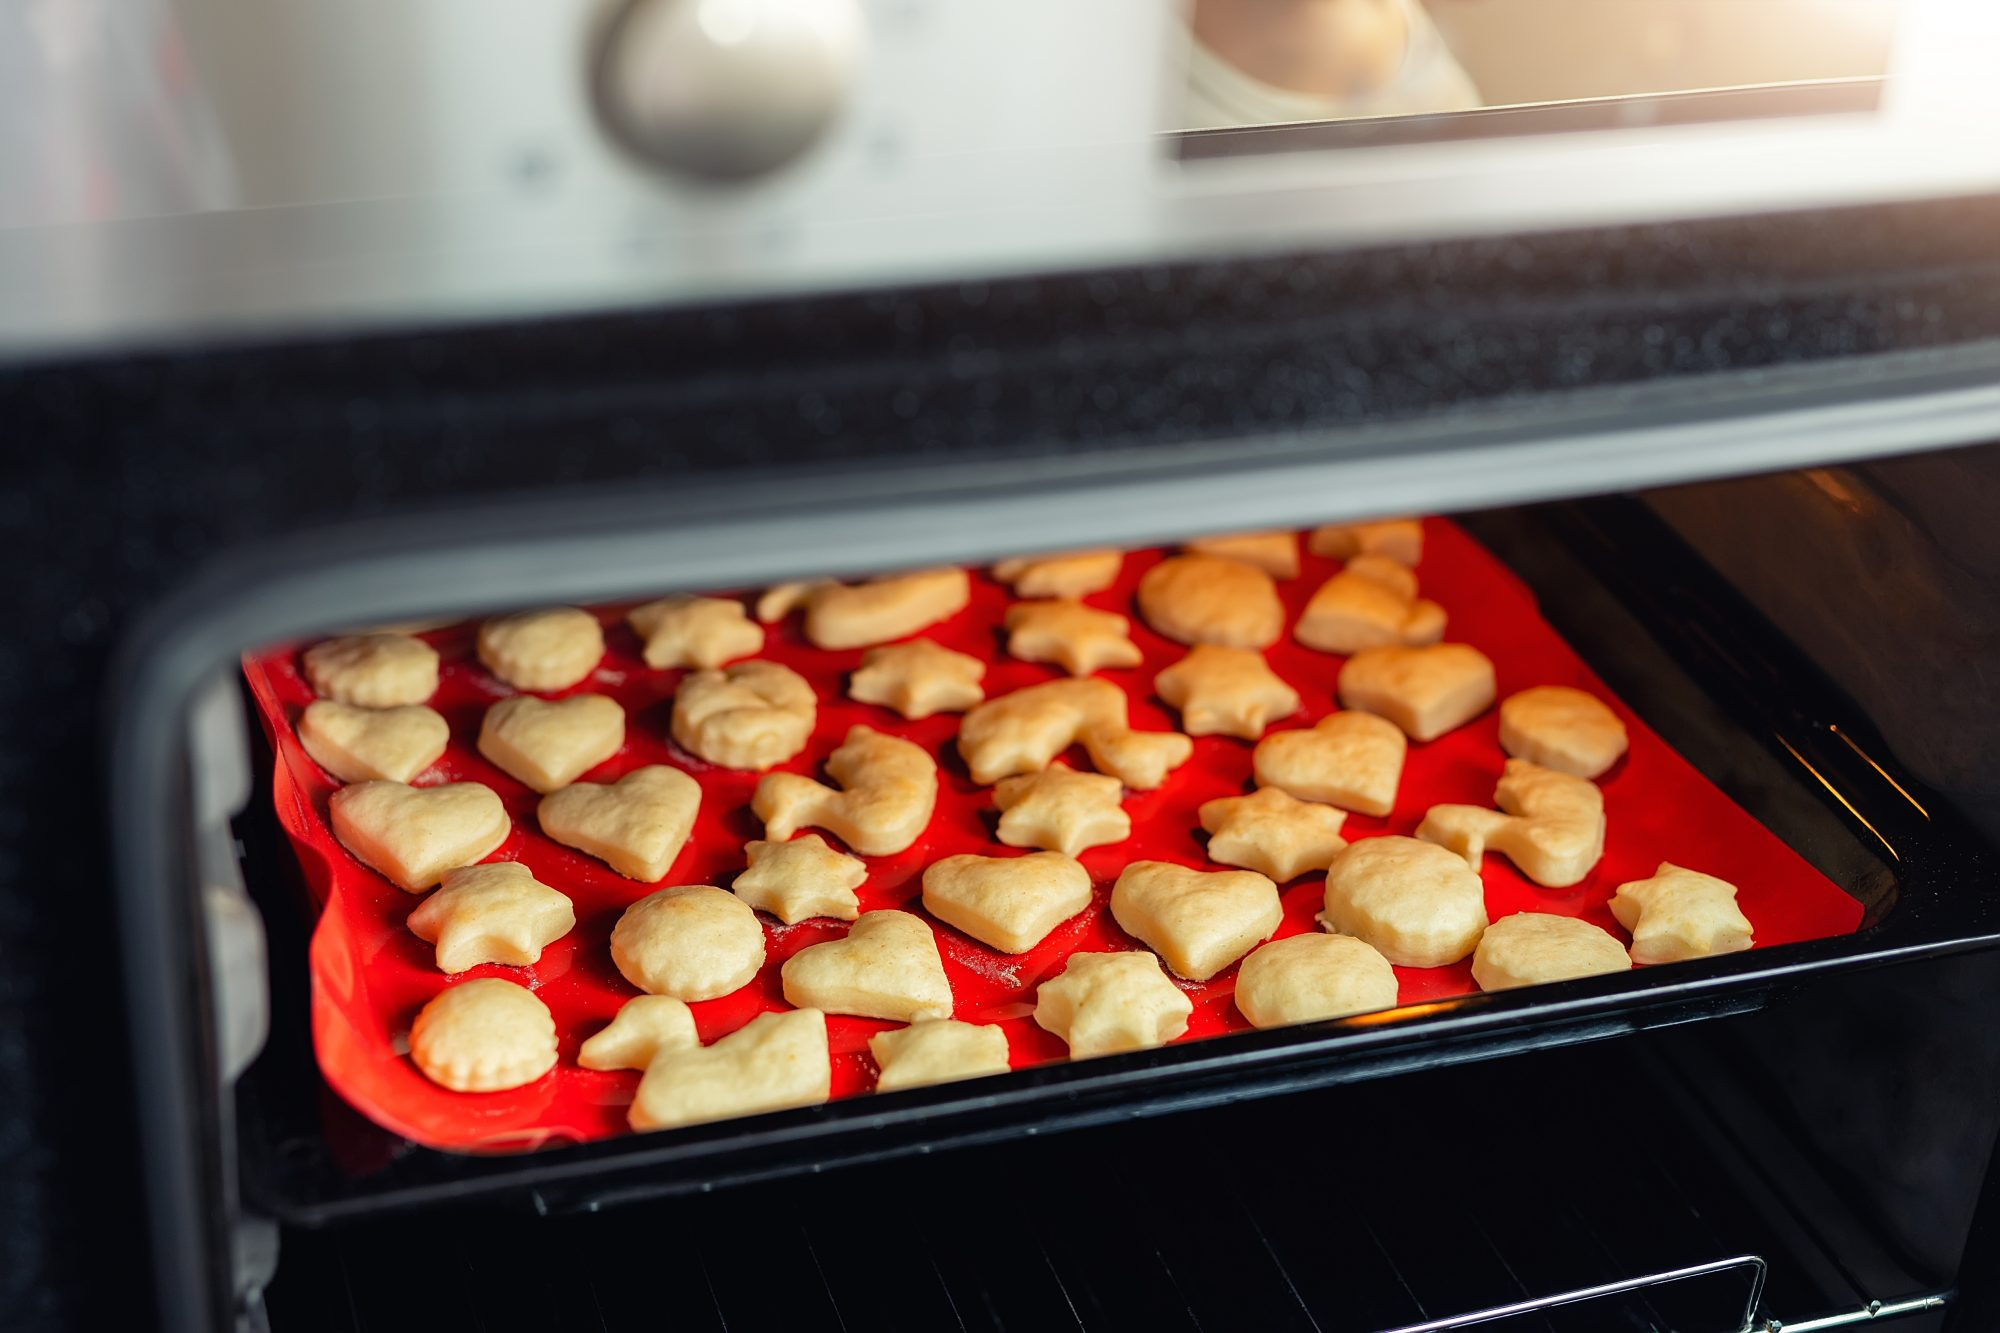 silicone baking mat in oven